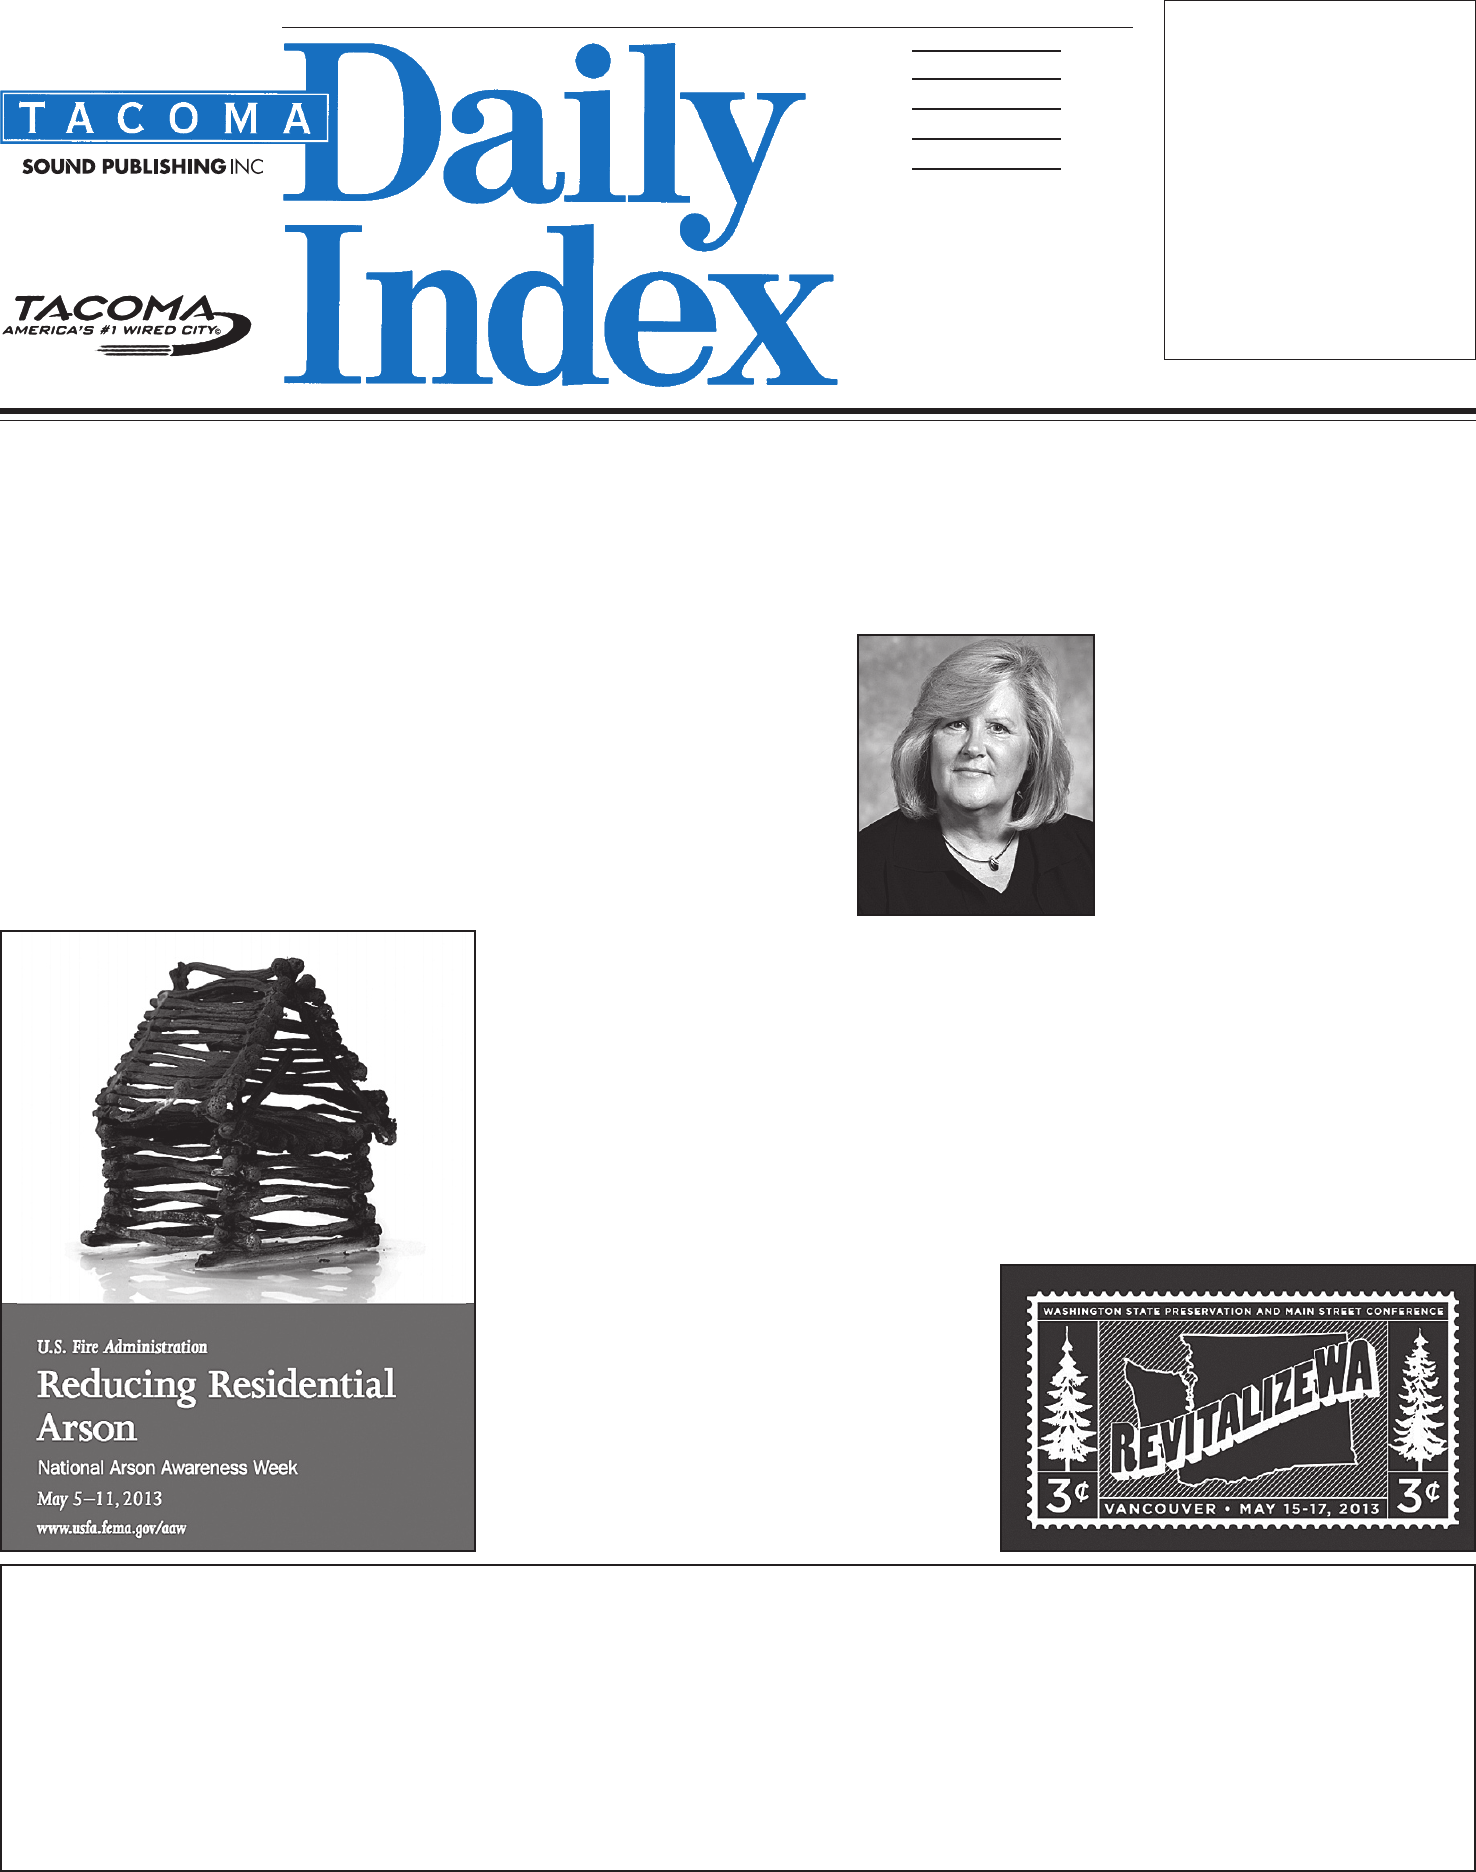 Andrea Garciaxxx tacoma daily index, may 09, 2013 - [pdf document]